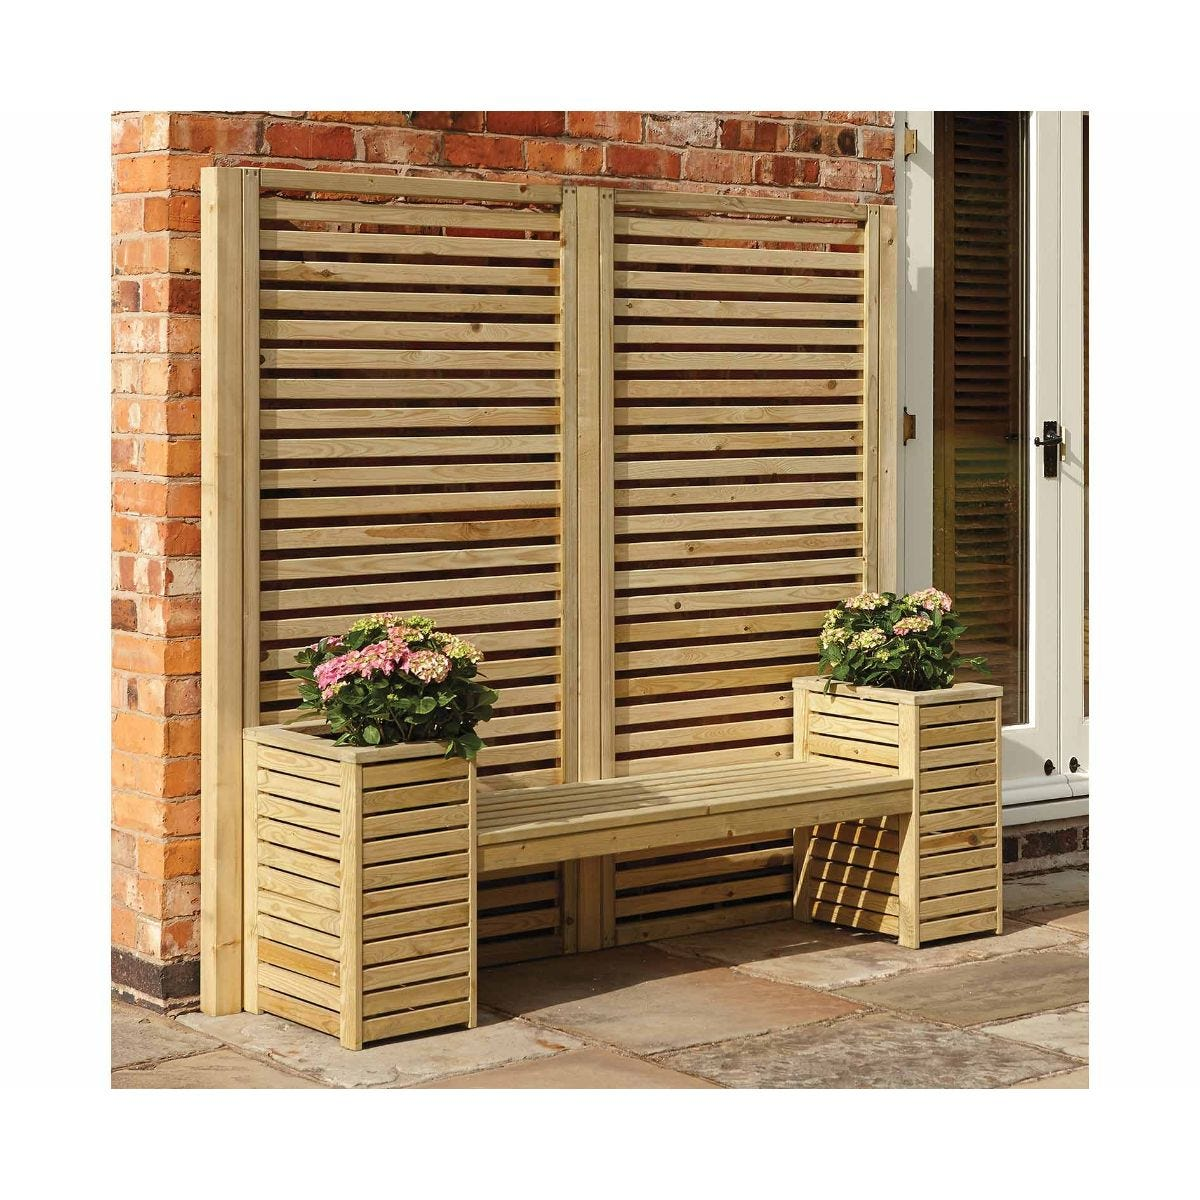 Rowlinson Garden Creations Seat Set, Natural